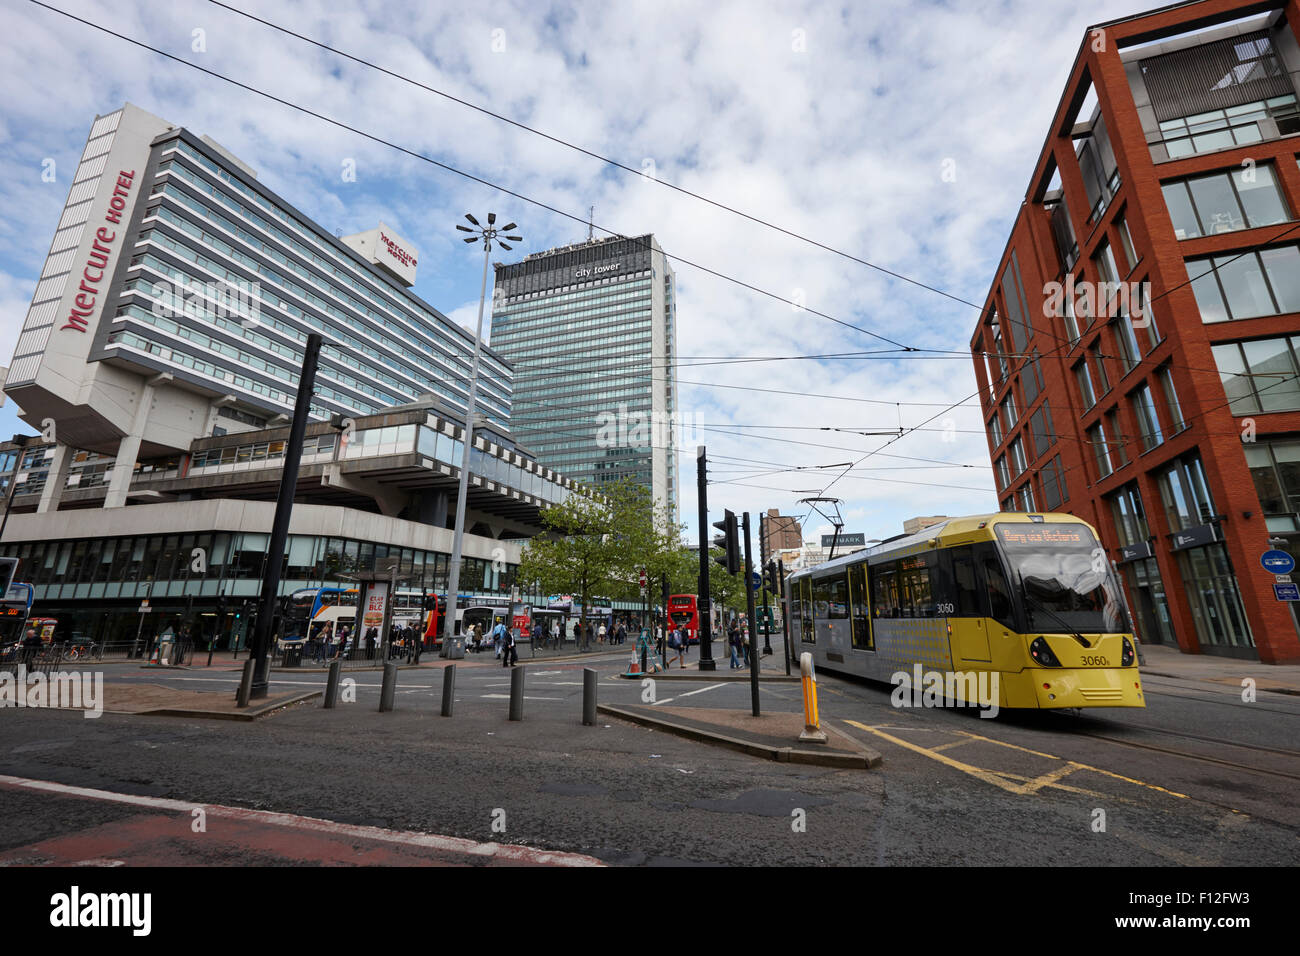 piccadilly gardens and Manchester city centre uk - Stock Image